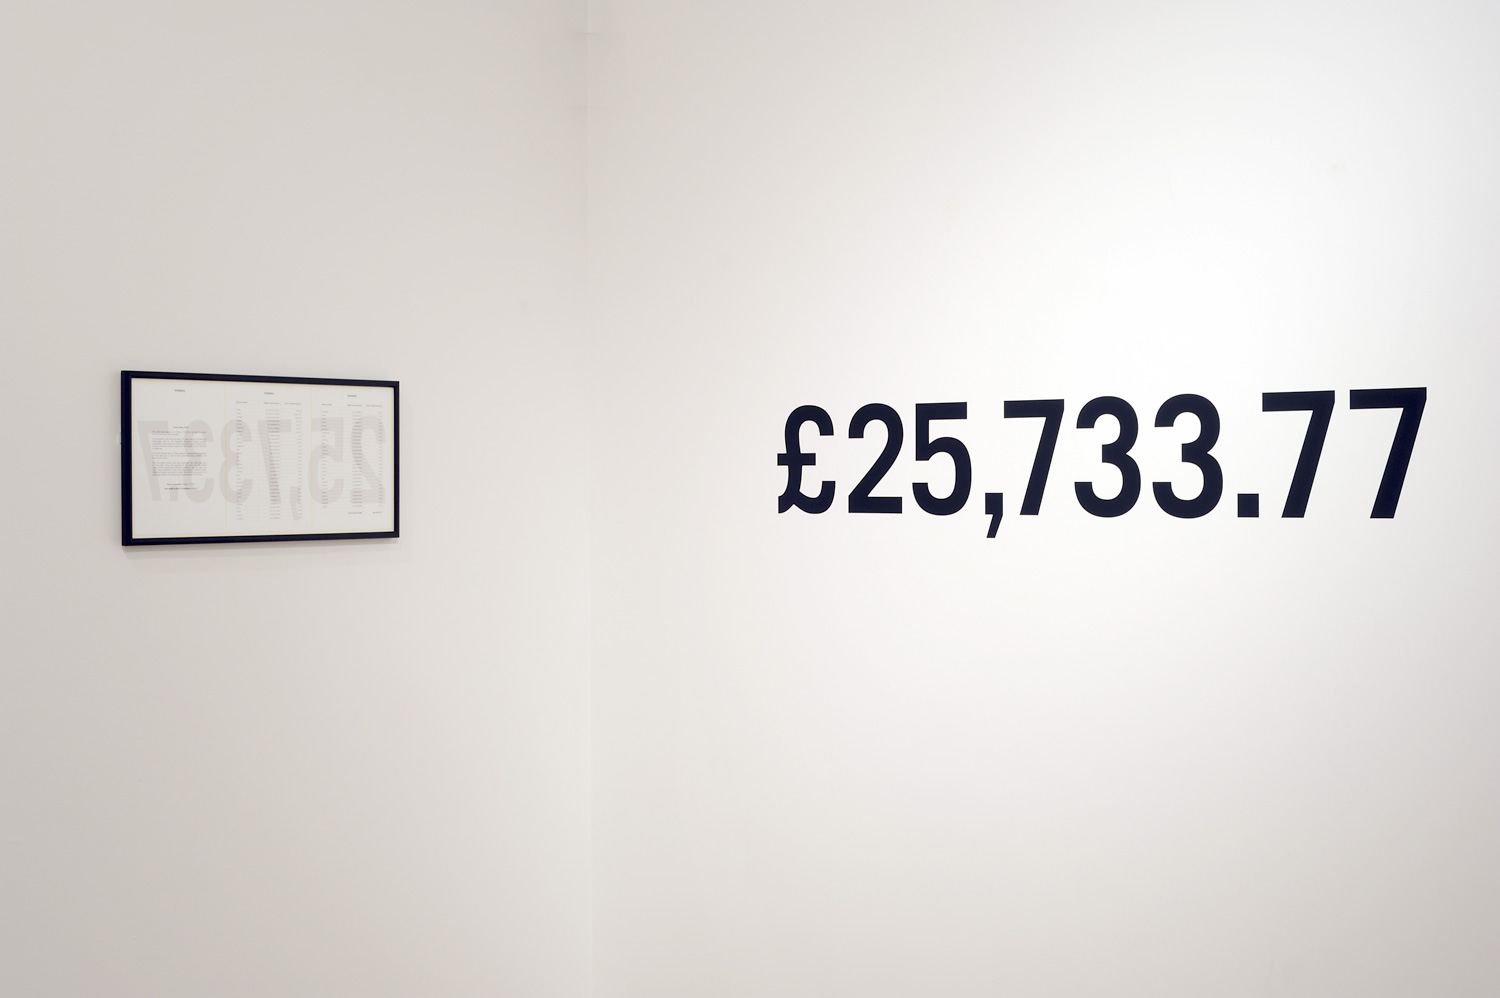 Inventory as installed at mima, Middlesbrough, 2011.